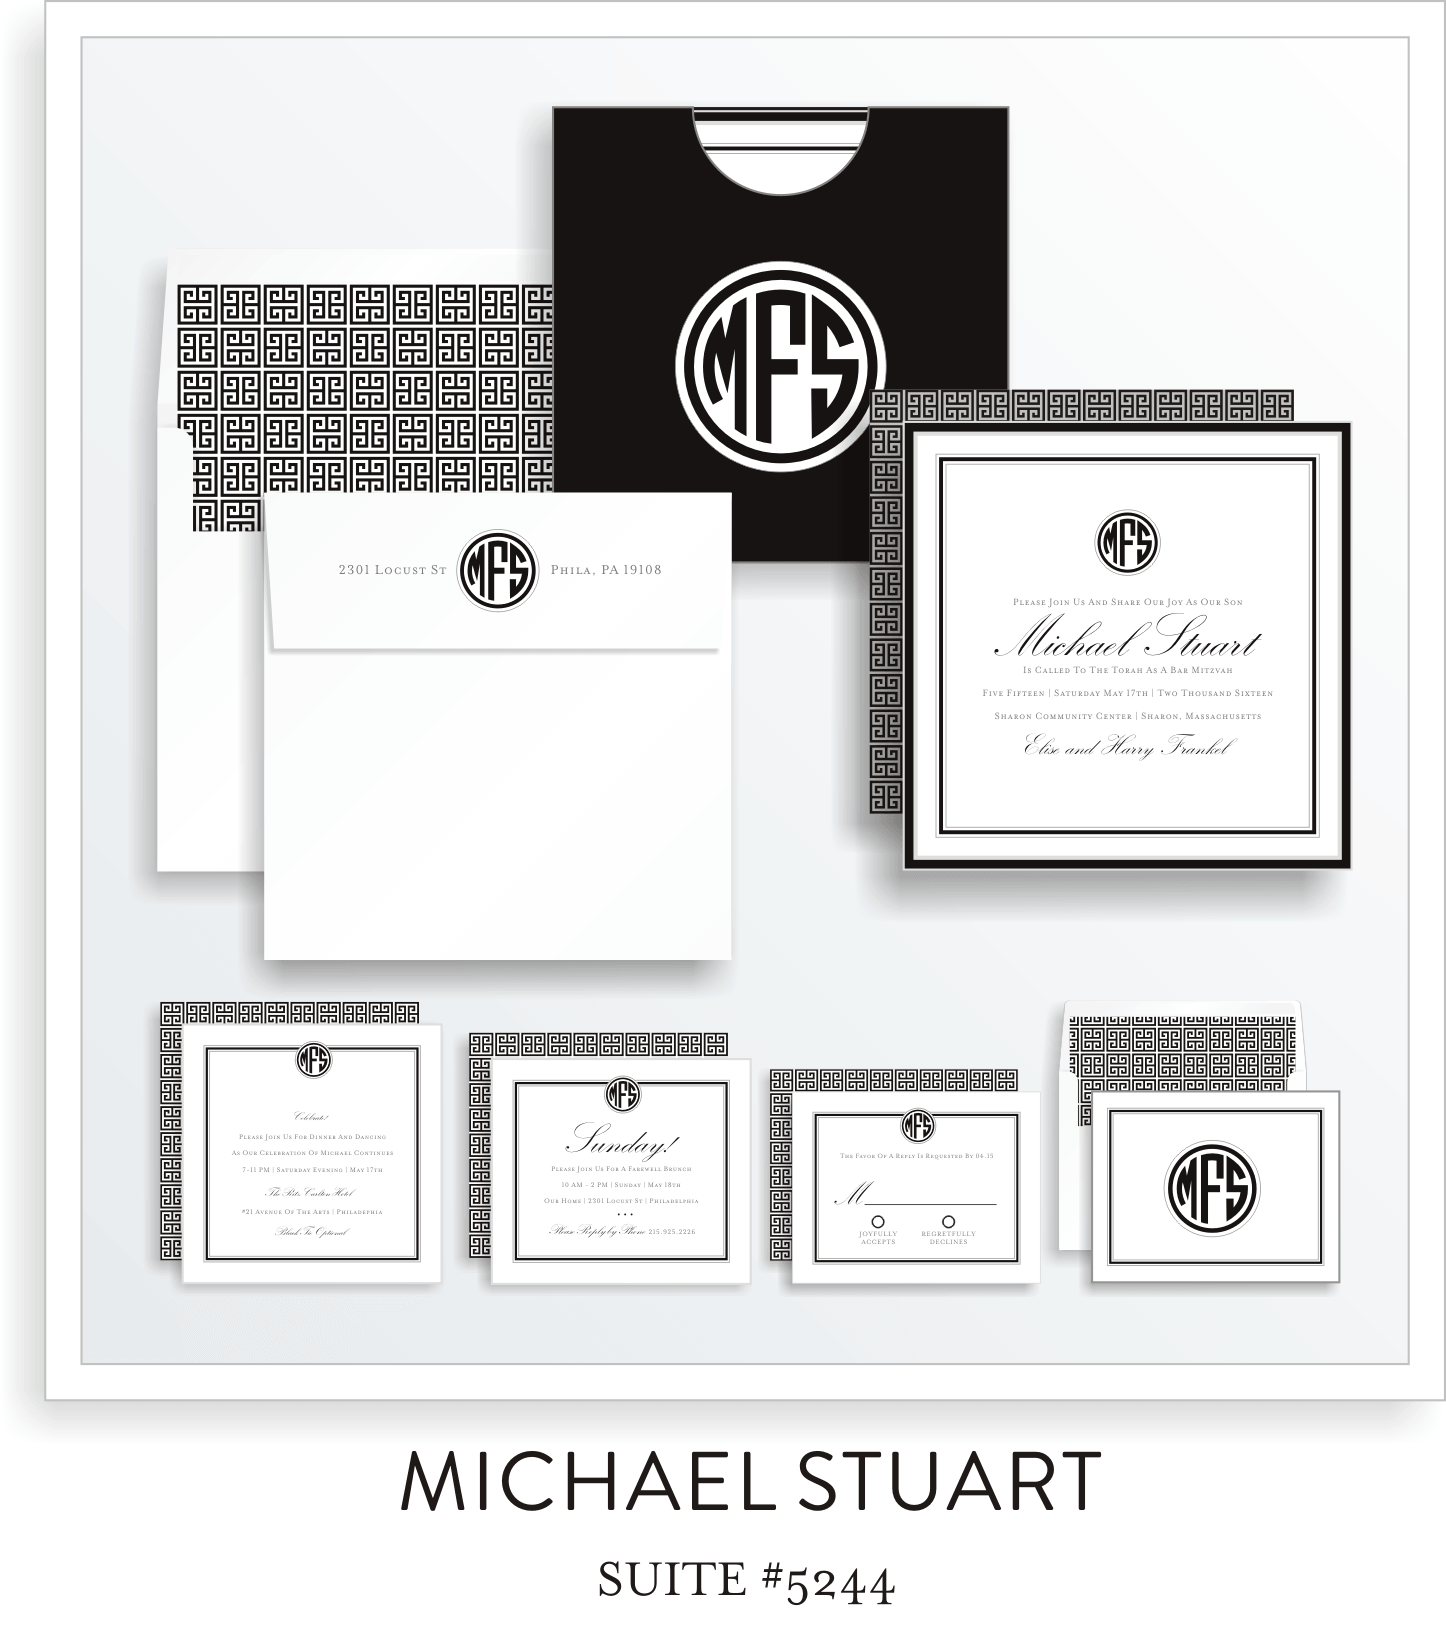 Copy of Bar Mitzvah Invitation Suite 5244 - Michael Stuart